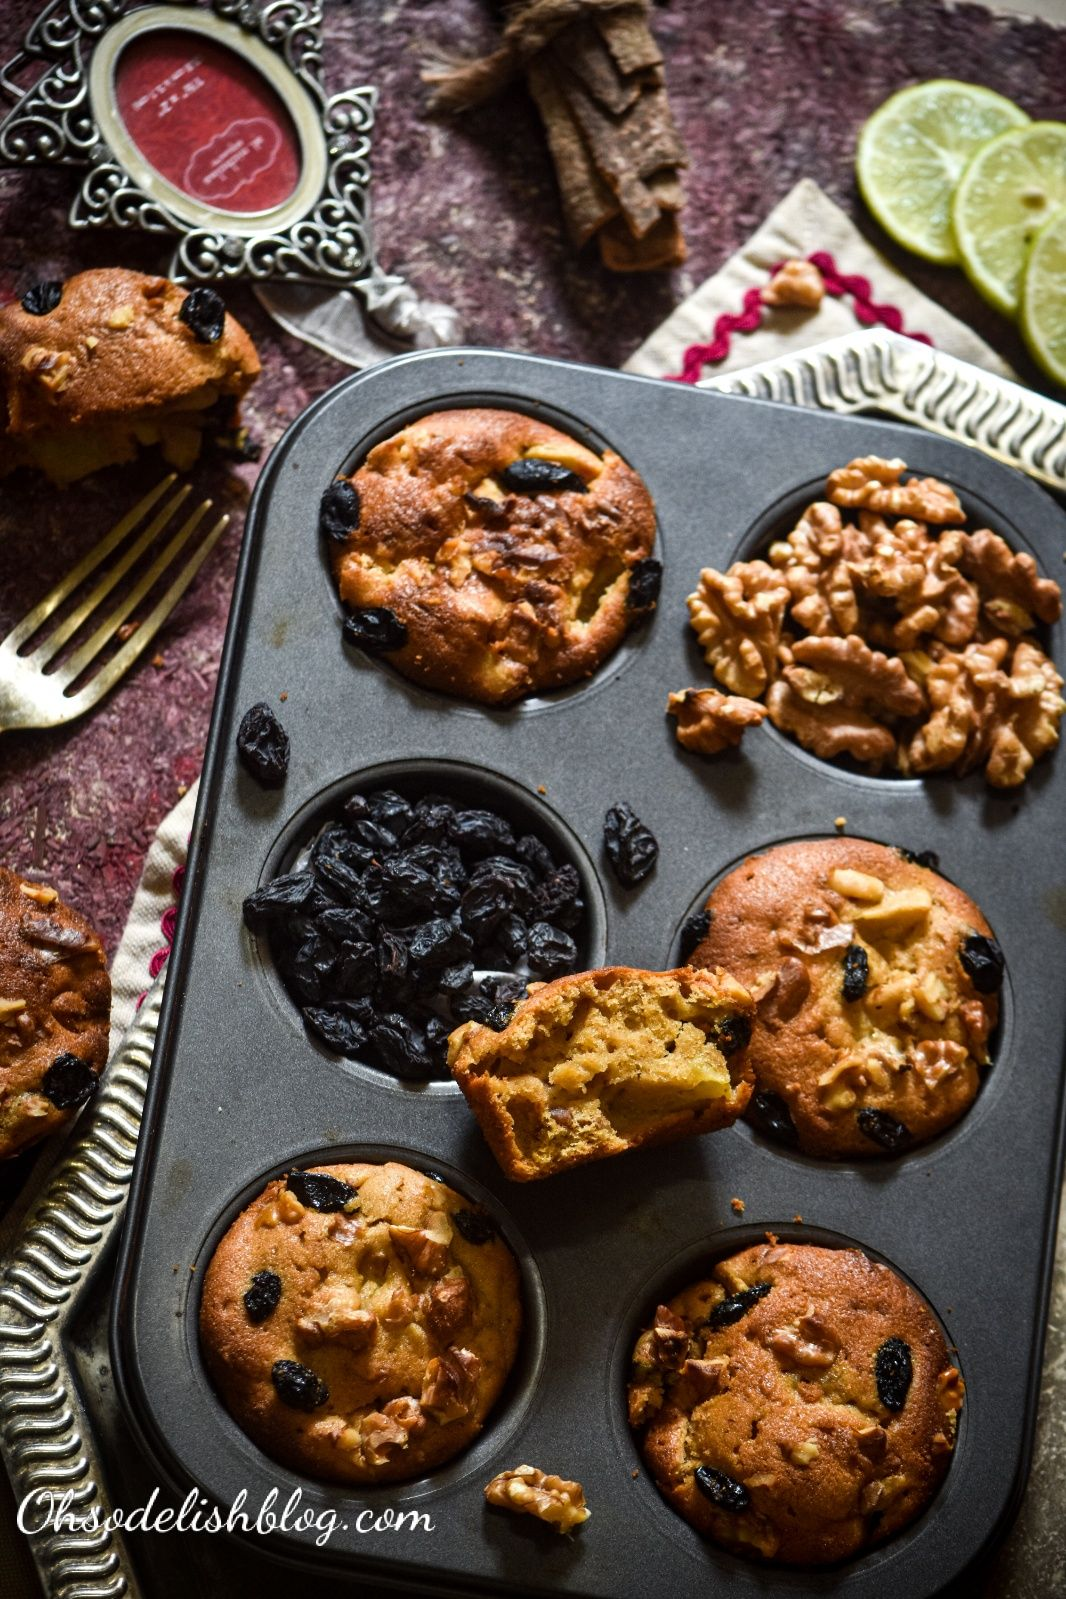 Healthy apple raisin walnut muffins made with wheat and amaranth flour